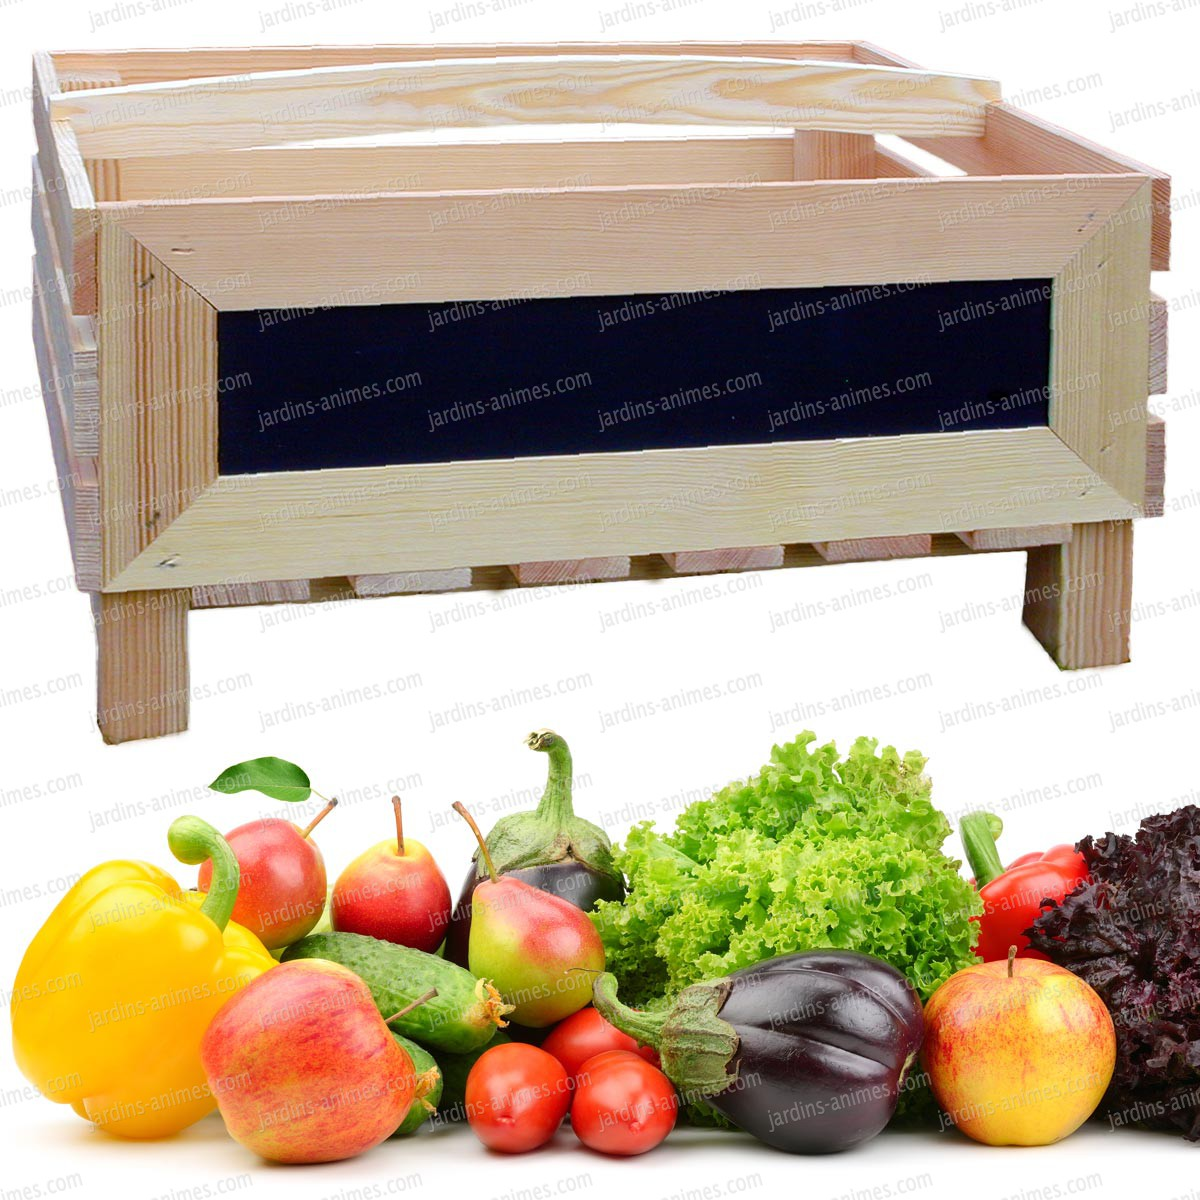 clayette cagette fruits et l gumes en bois accessoire ustensile cuisine. Black Bedroom Furniture Sets. Home Design Ideas